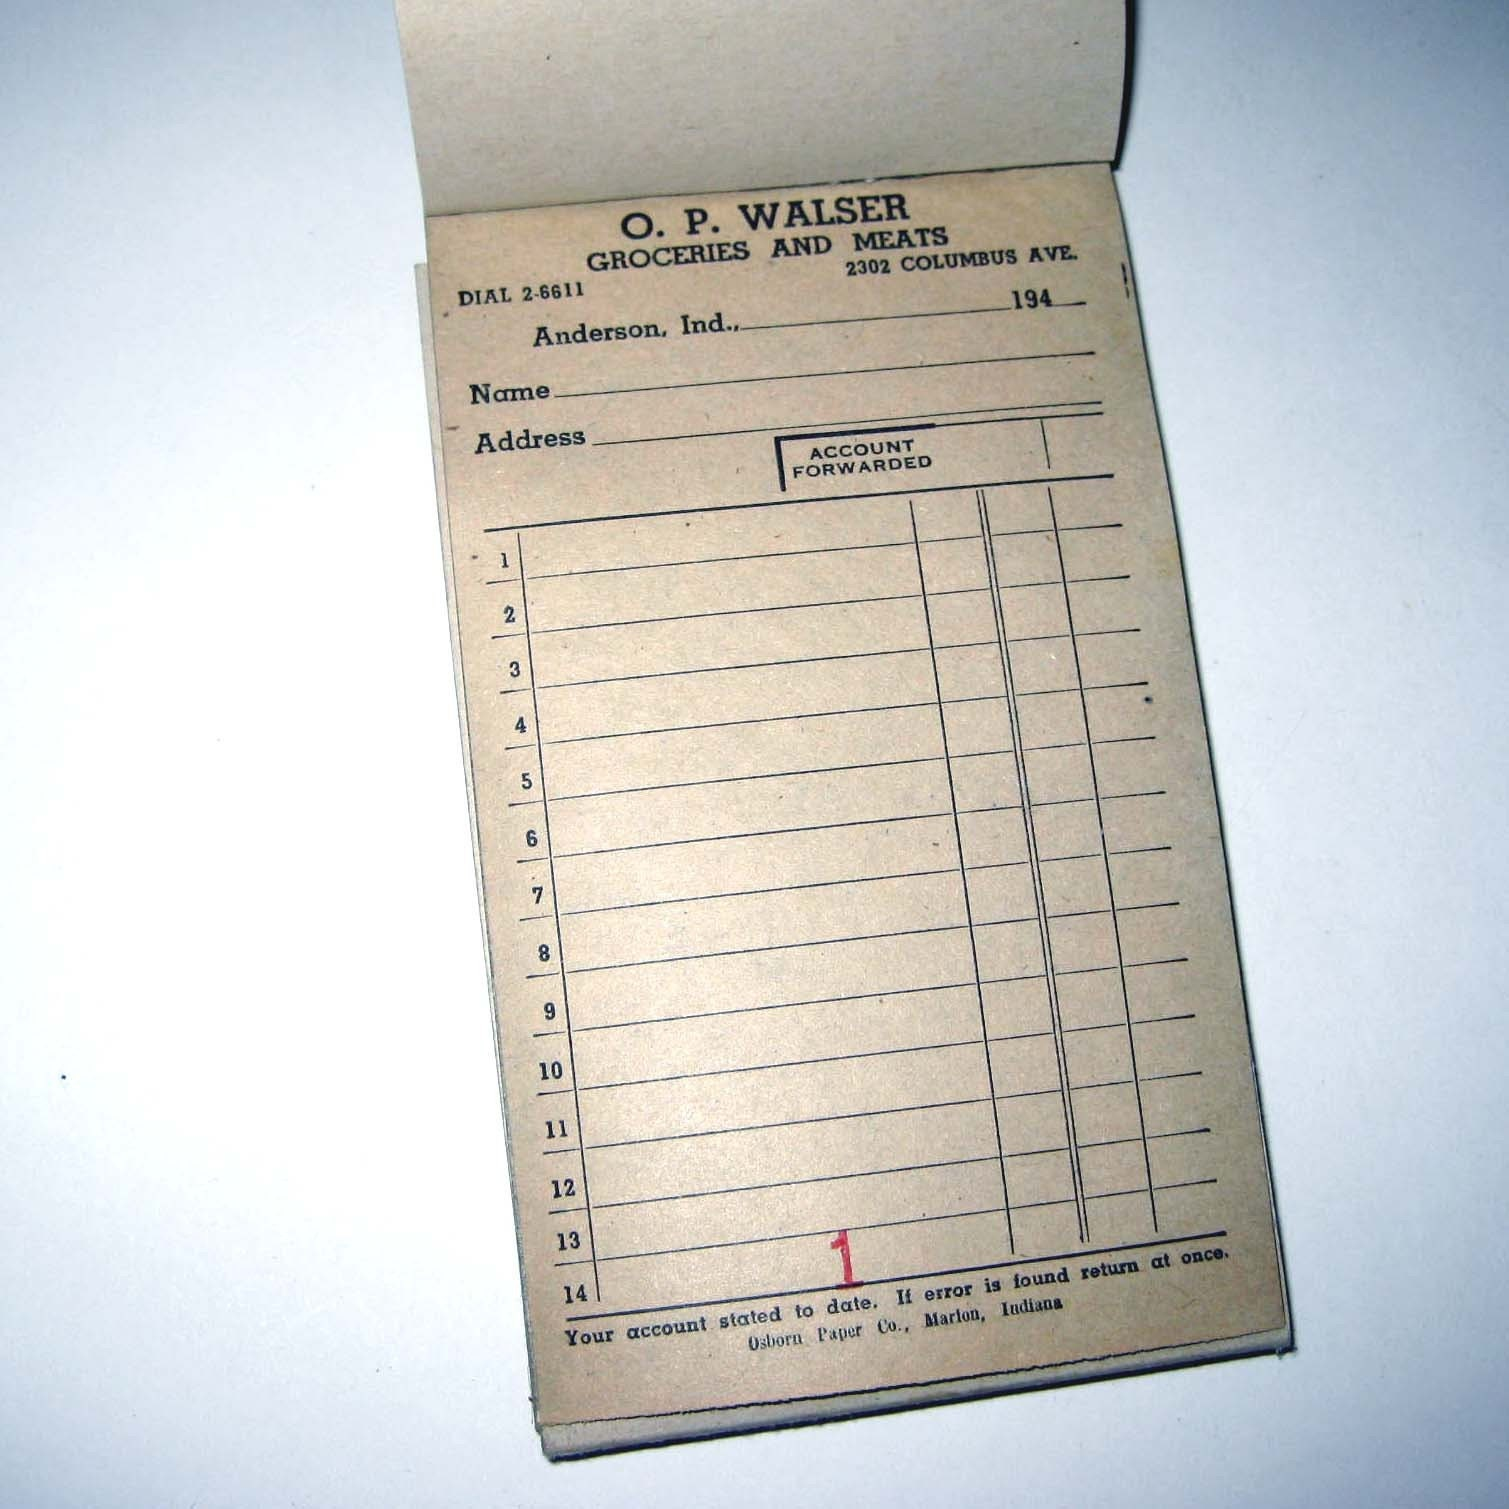 Vintage 1940s Receipt Pad From Old Grocery Store